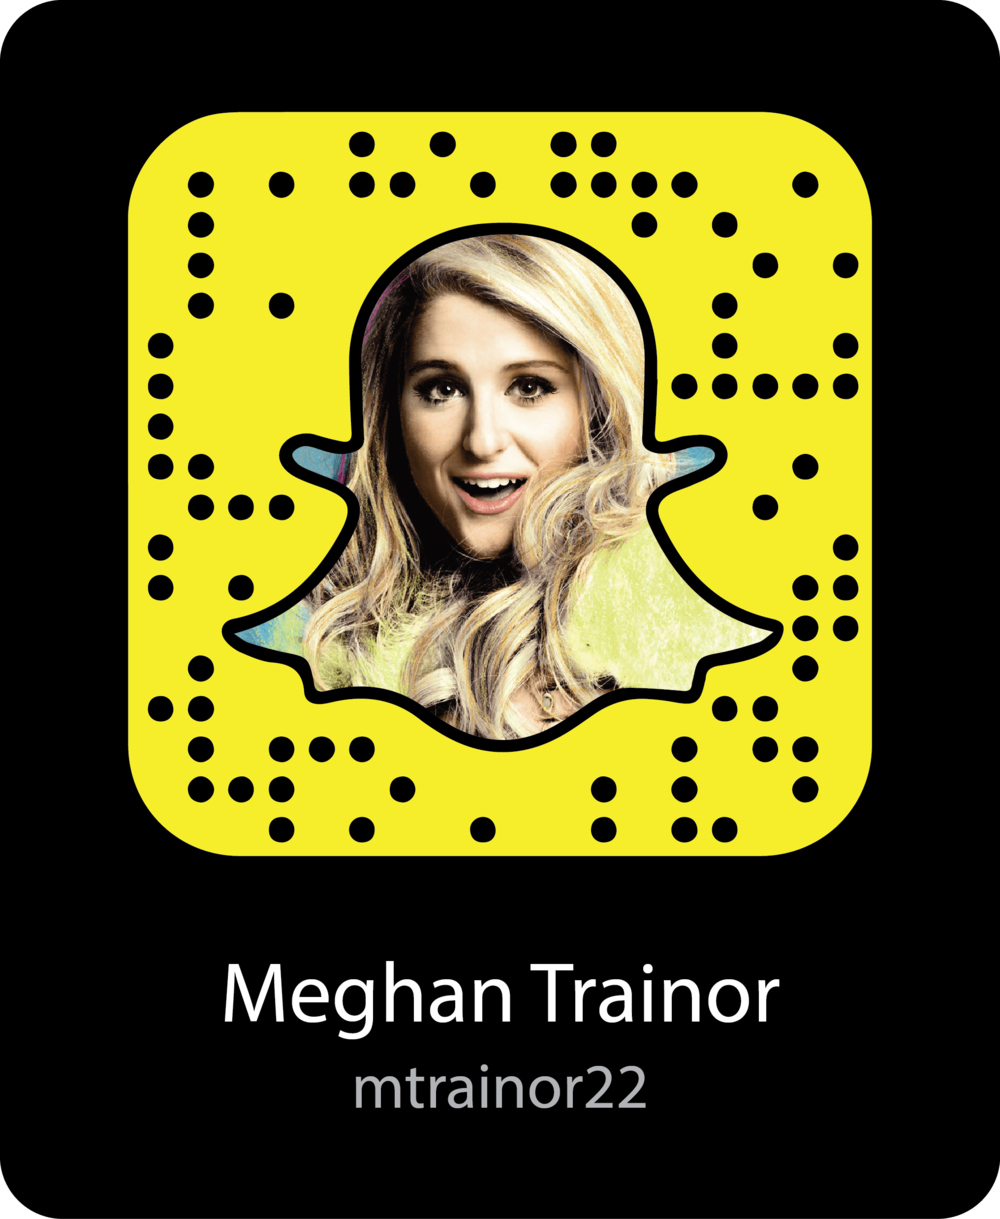 Snapchat Meghan Trainor nudes (87 photo), Tits, Bikini, Instagram, swimsuit 2015